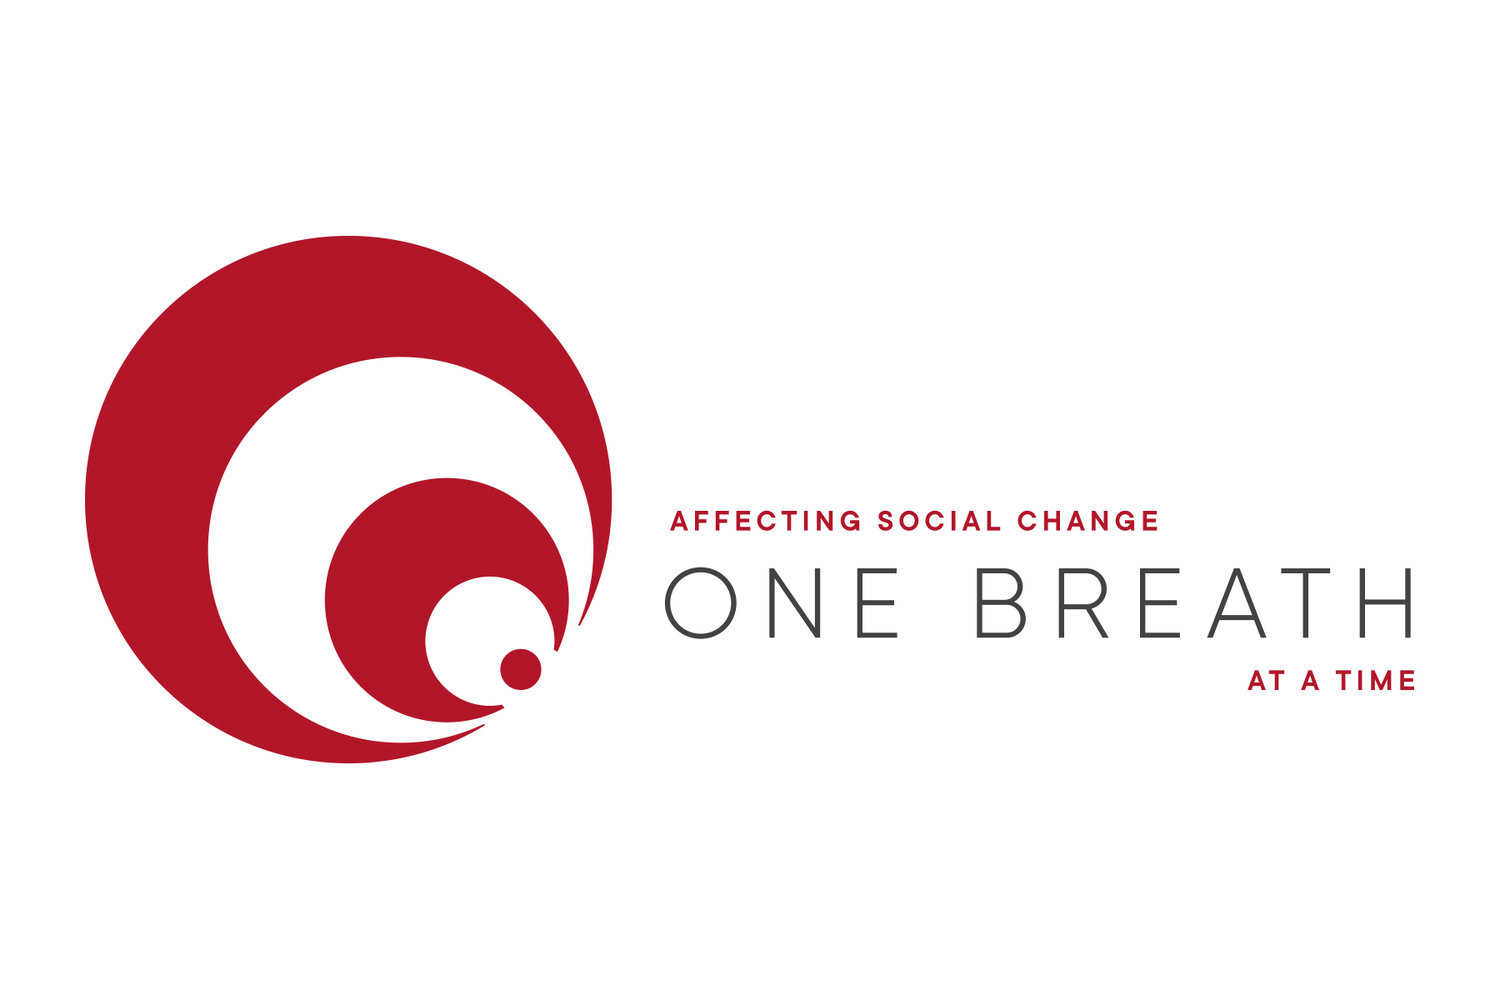 One-breath.org